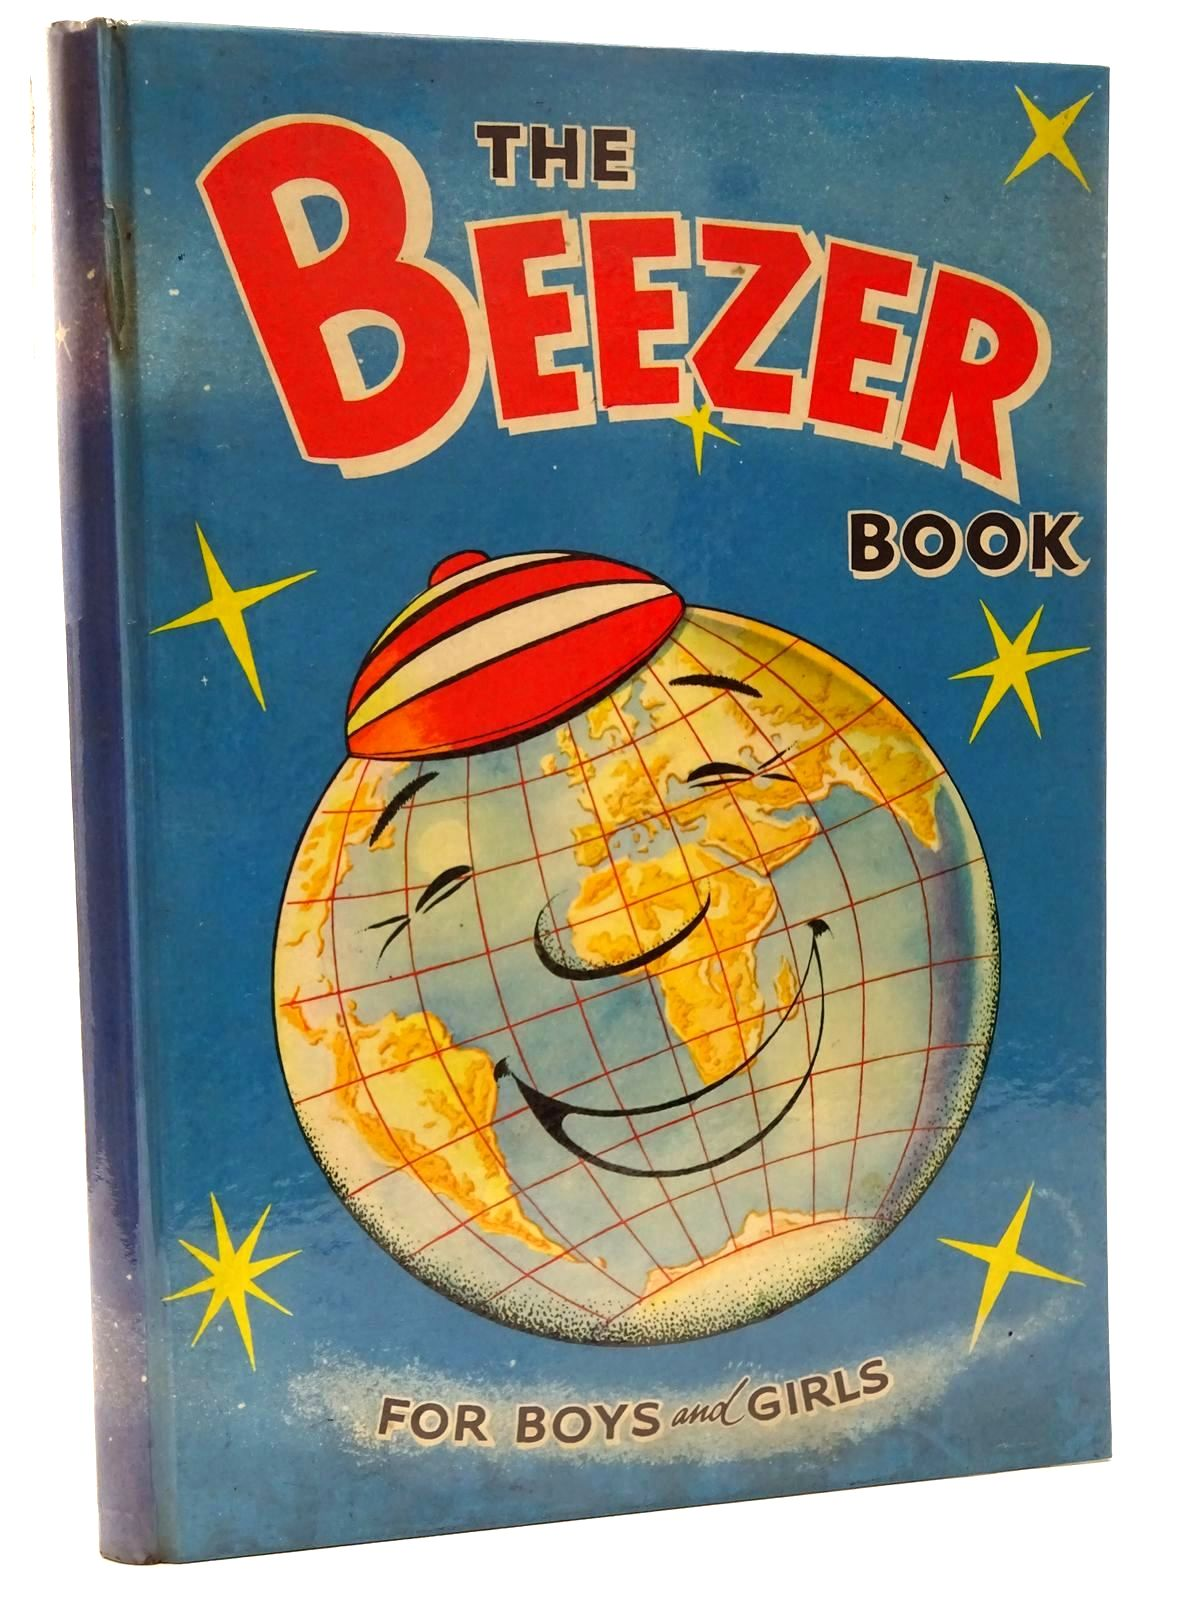 Photo of THE BEEZER BOOK 1961 published by D.C. Thomson & Co Ltd. (STOCK CODE: 2124640)  for sale by Stella & Rose's Books